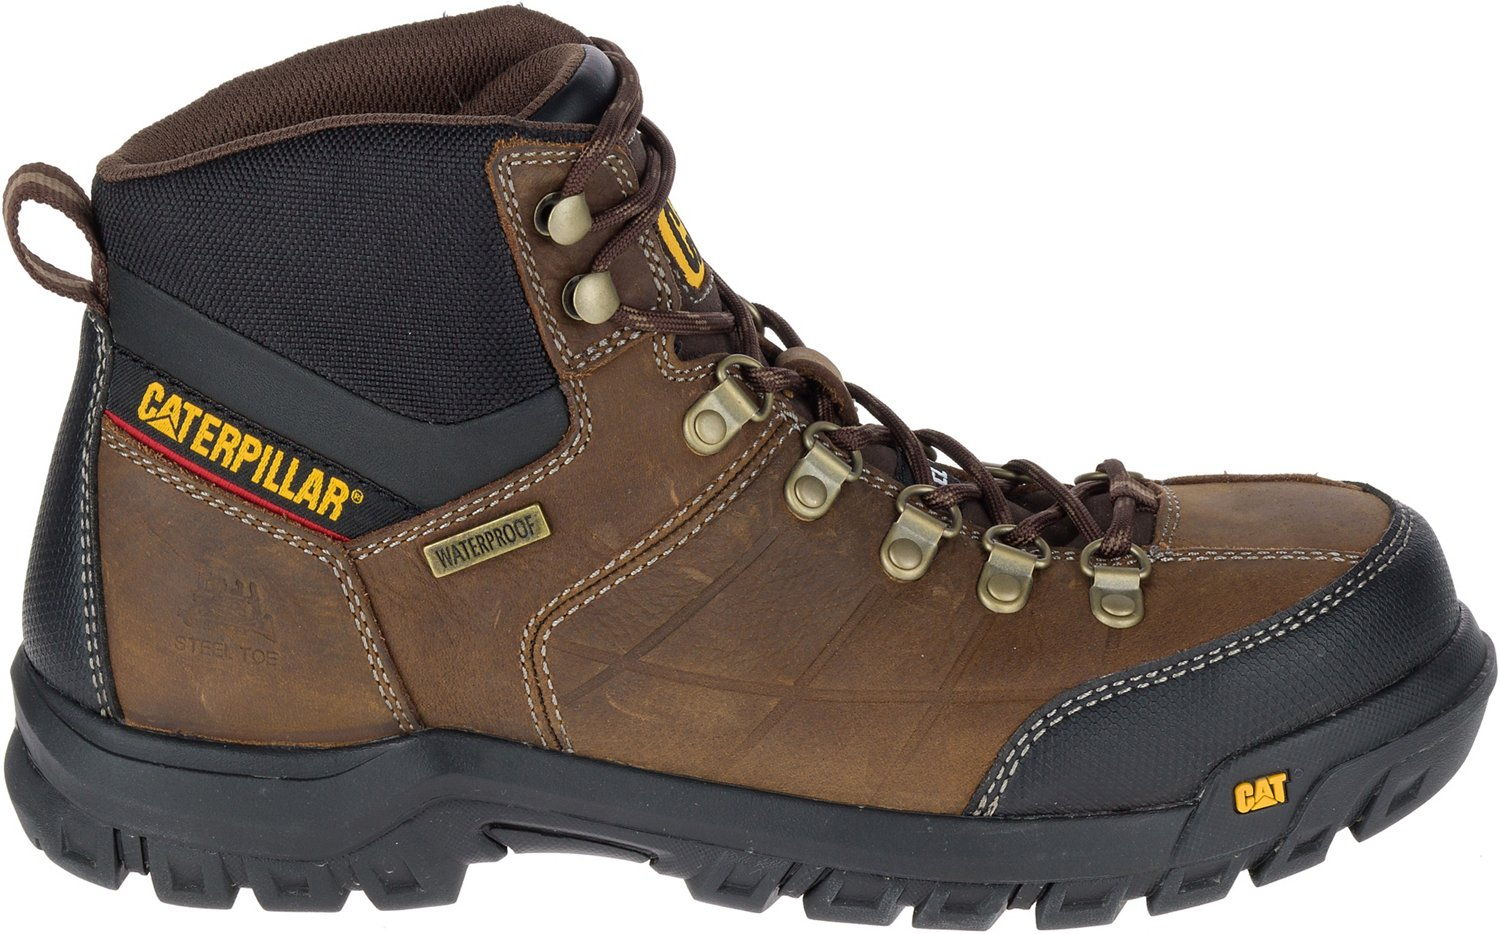 Cat Footwear Men's Threshold EH Steel Toe Lace Up Work Boots